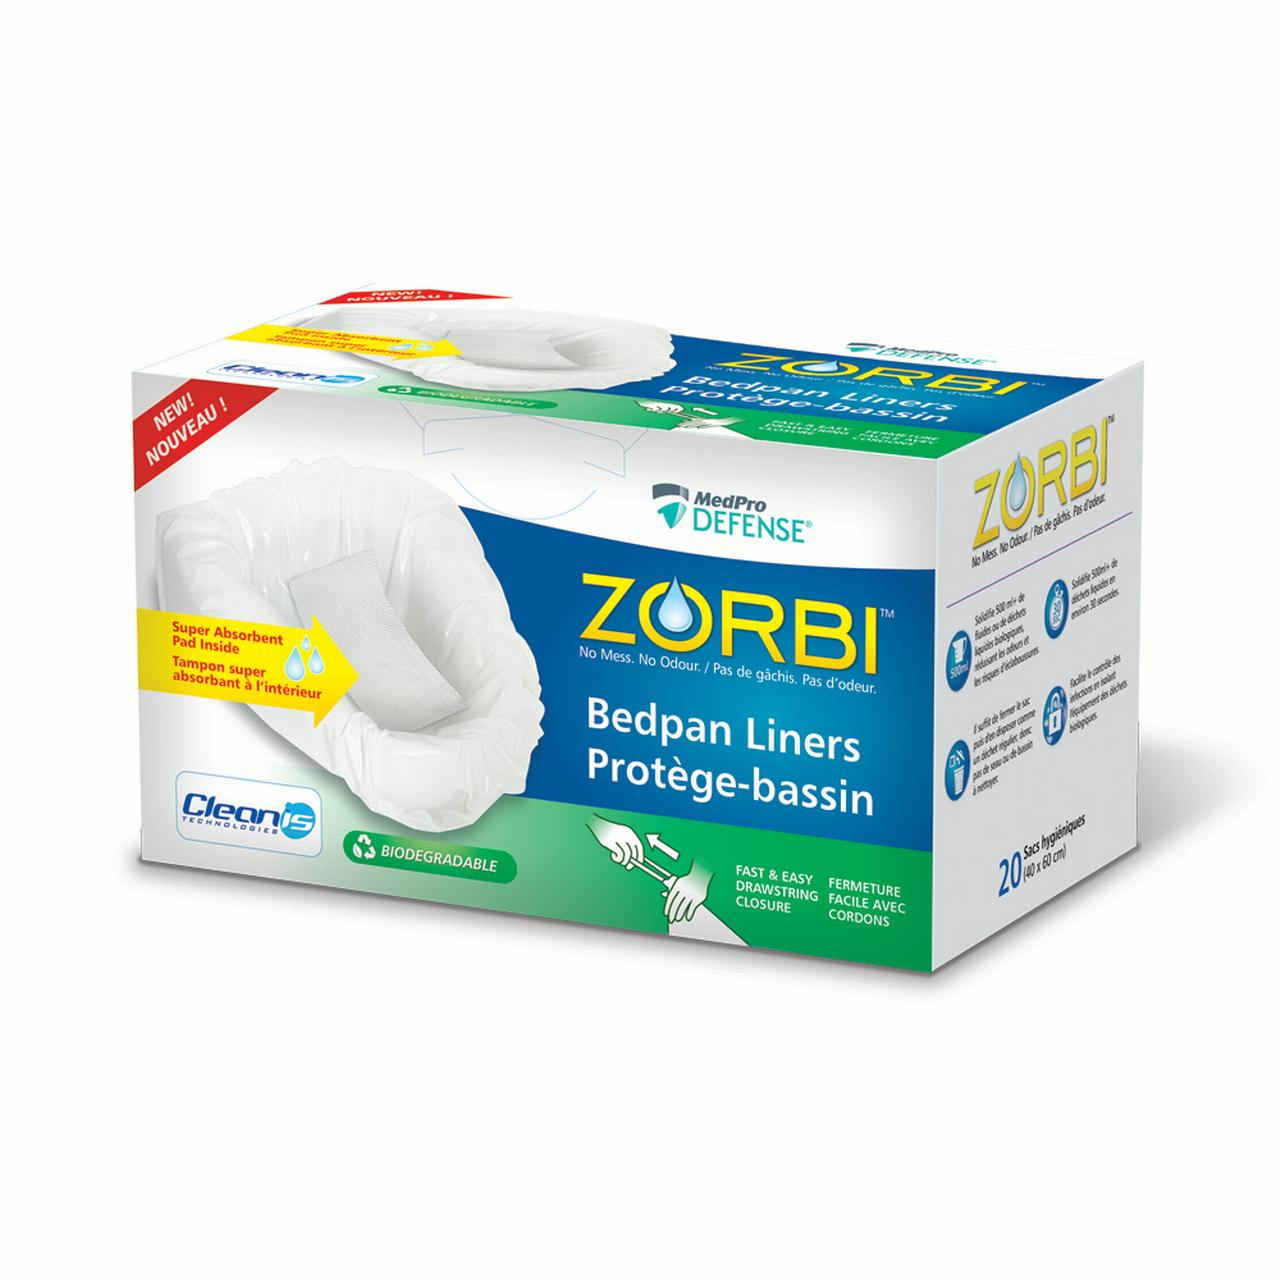 Zorbi Biodegradable Commode and Bedpan Liner Bags with Super Absorbent Pads, White, 20 Count